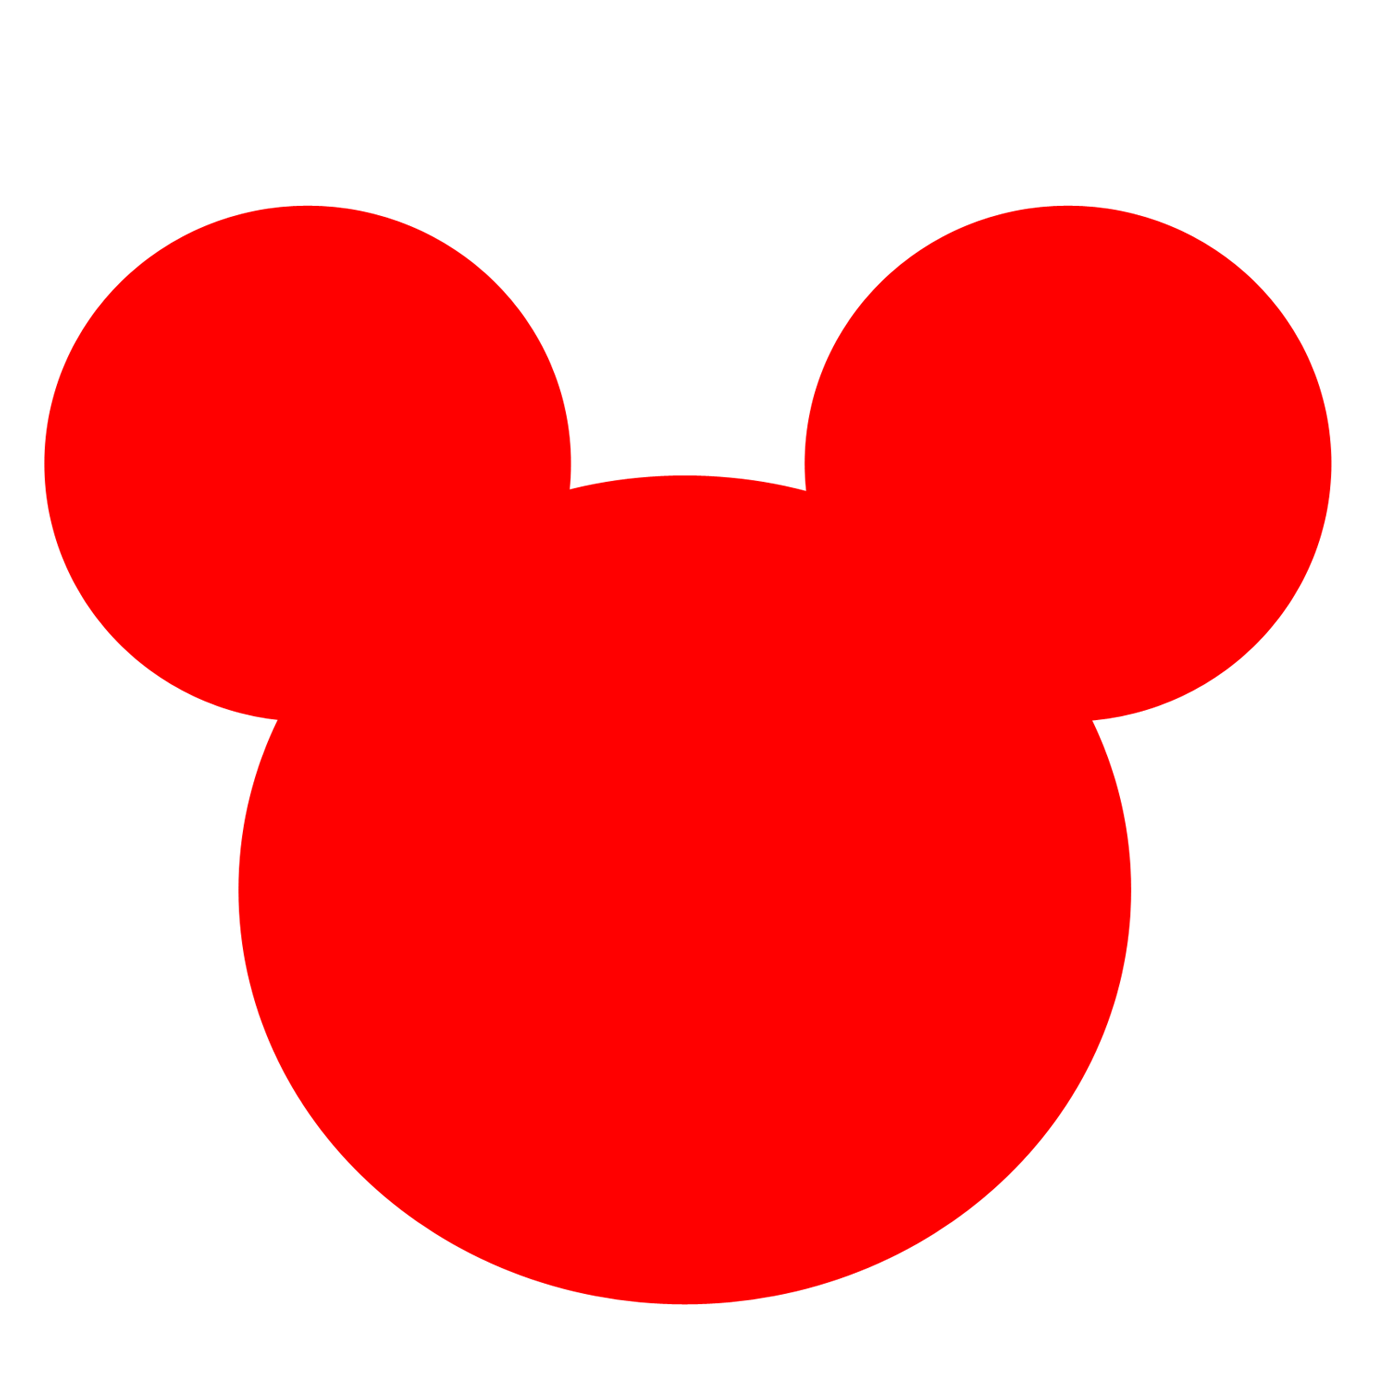 Mickey mouse in sun glasses clipart clipart library library Mickey Mouse Birthday Border Clipart - Clipart Kid clipart library library